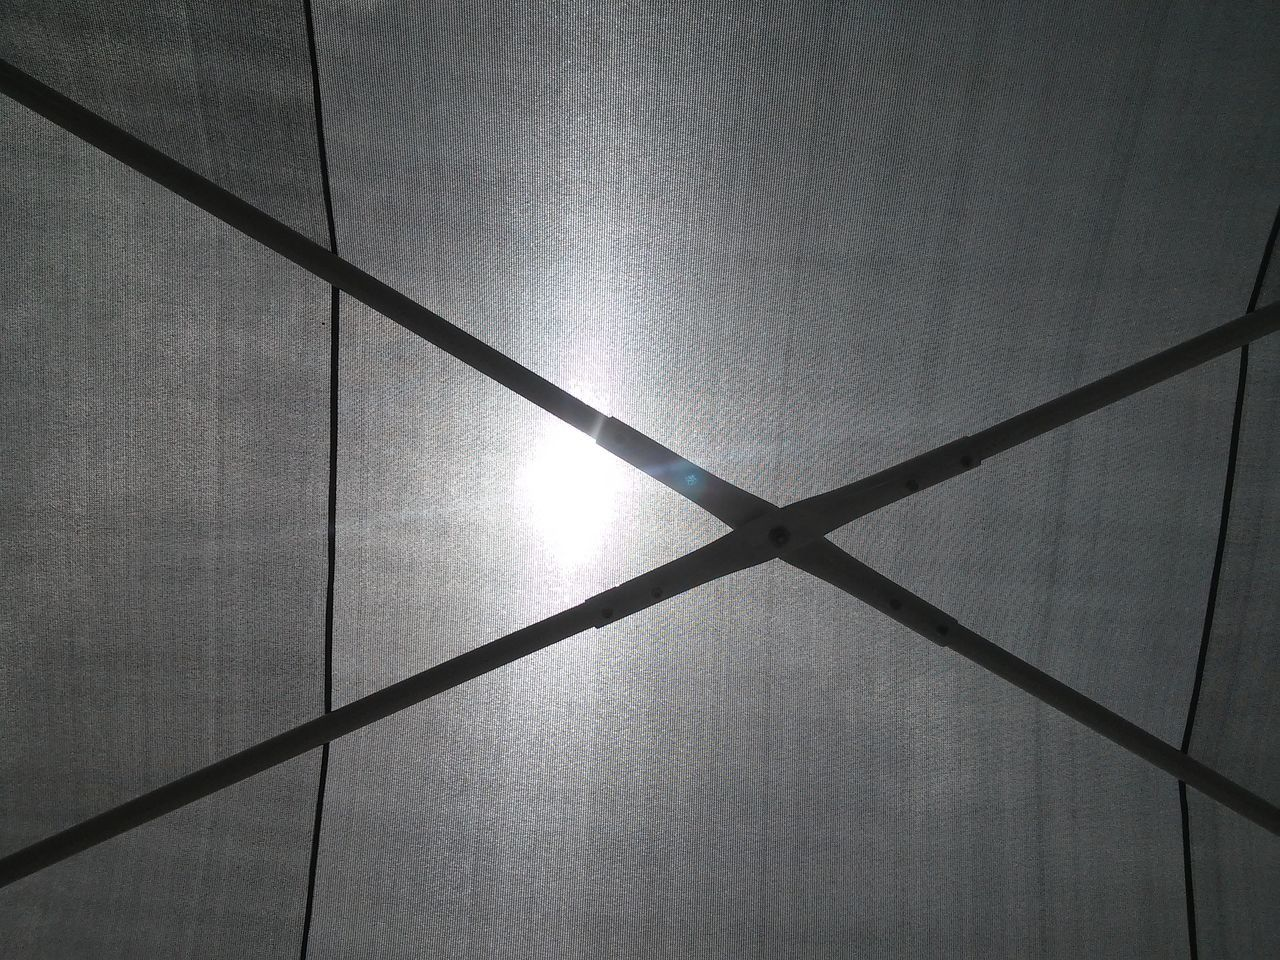 3XSPhotographyUnity 3Xunity Abstratus Alternative Energy Architecture Art Backgrounds Built Structure Close-up Creations  Day Electricity  Indoors  Low Angle View Nature No People Nopeople Objects Pattern Sunlight